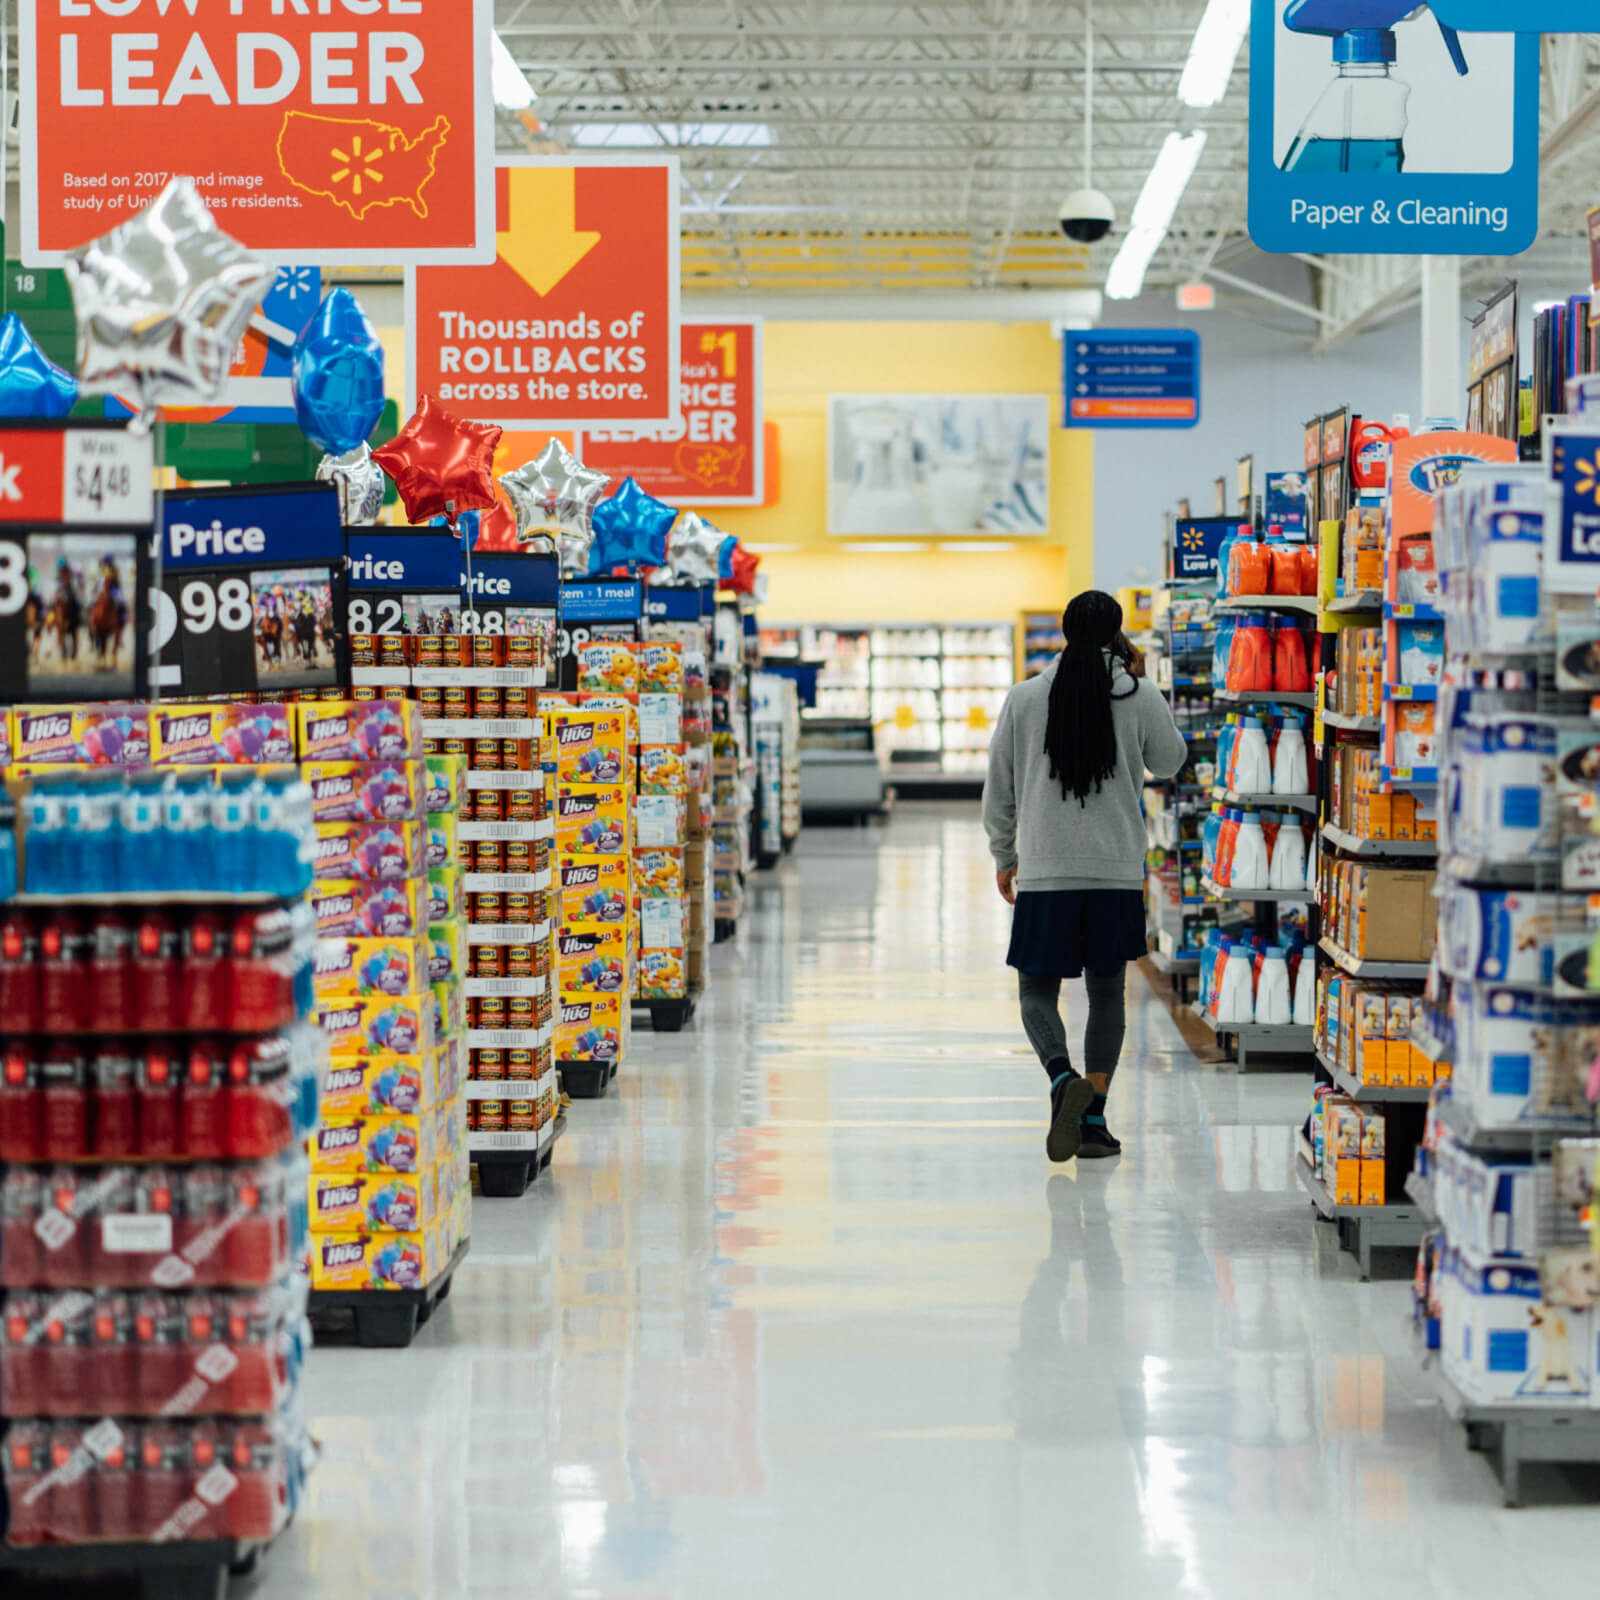 App to Enable Retail Associates to Work Safer Amid COVID-19 Splash